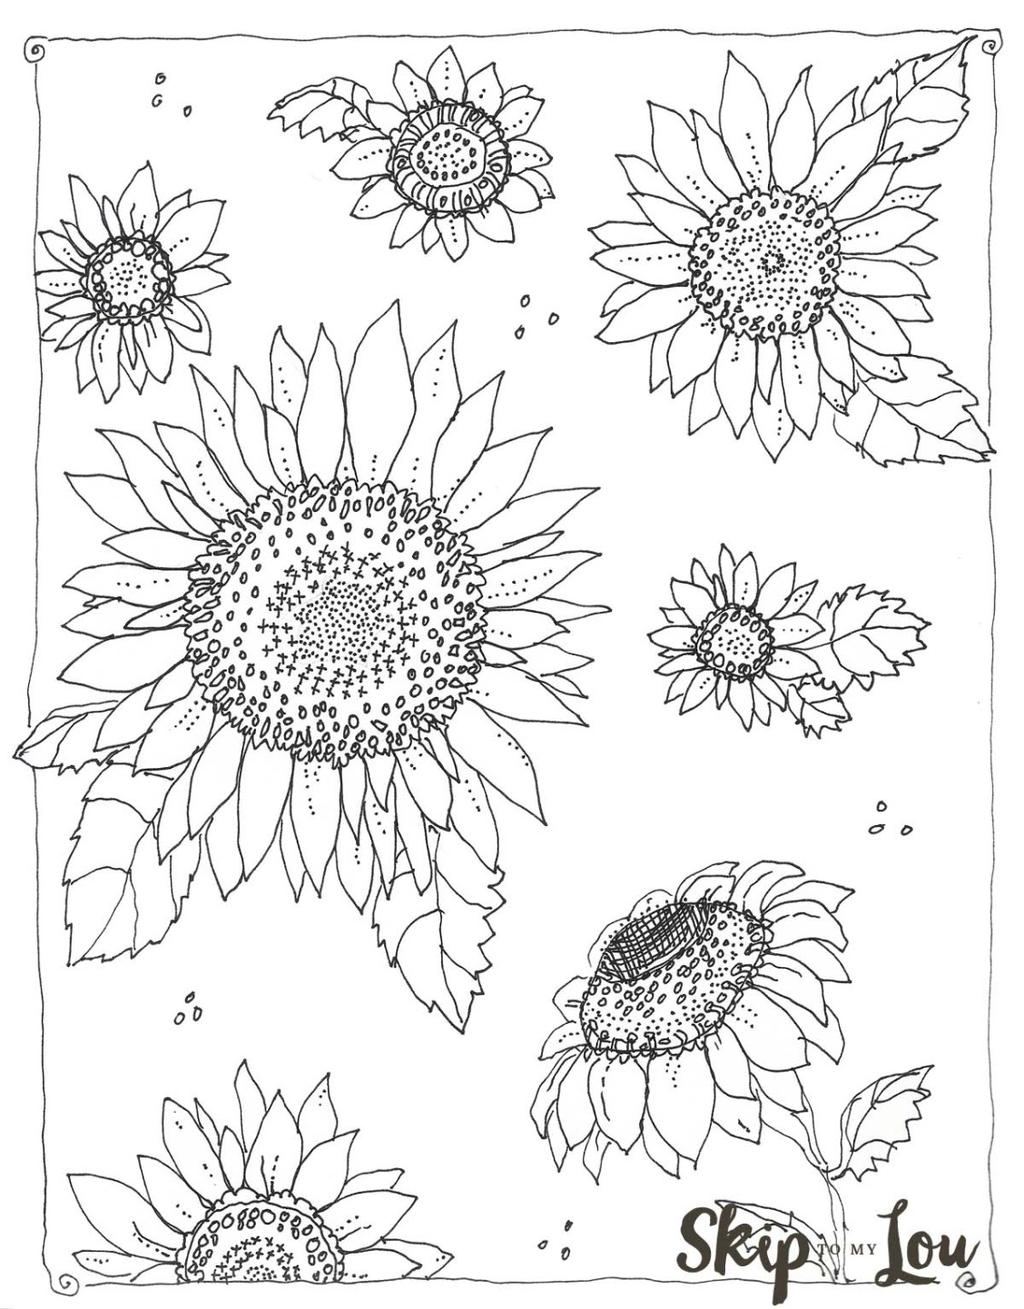 Spanish Holiday Coloring Pages Inspirational fice for